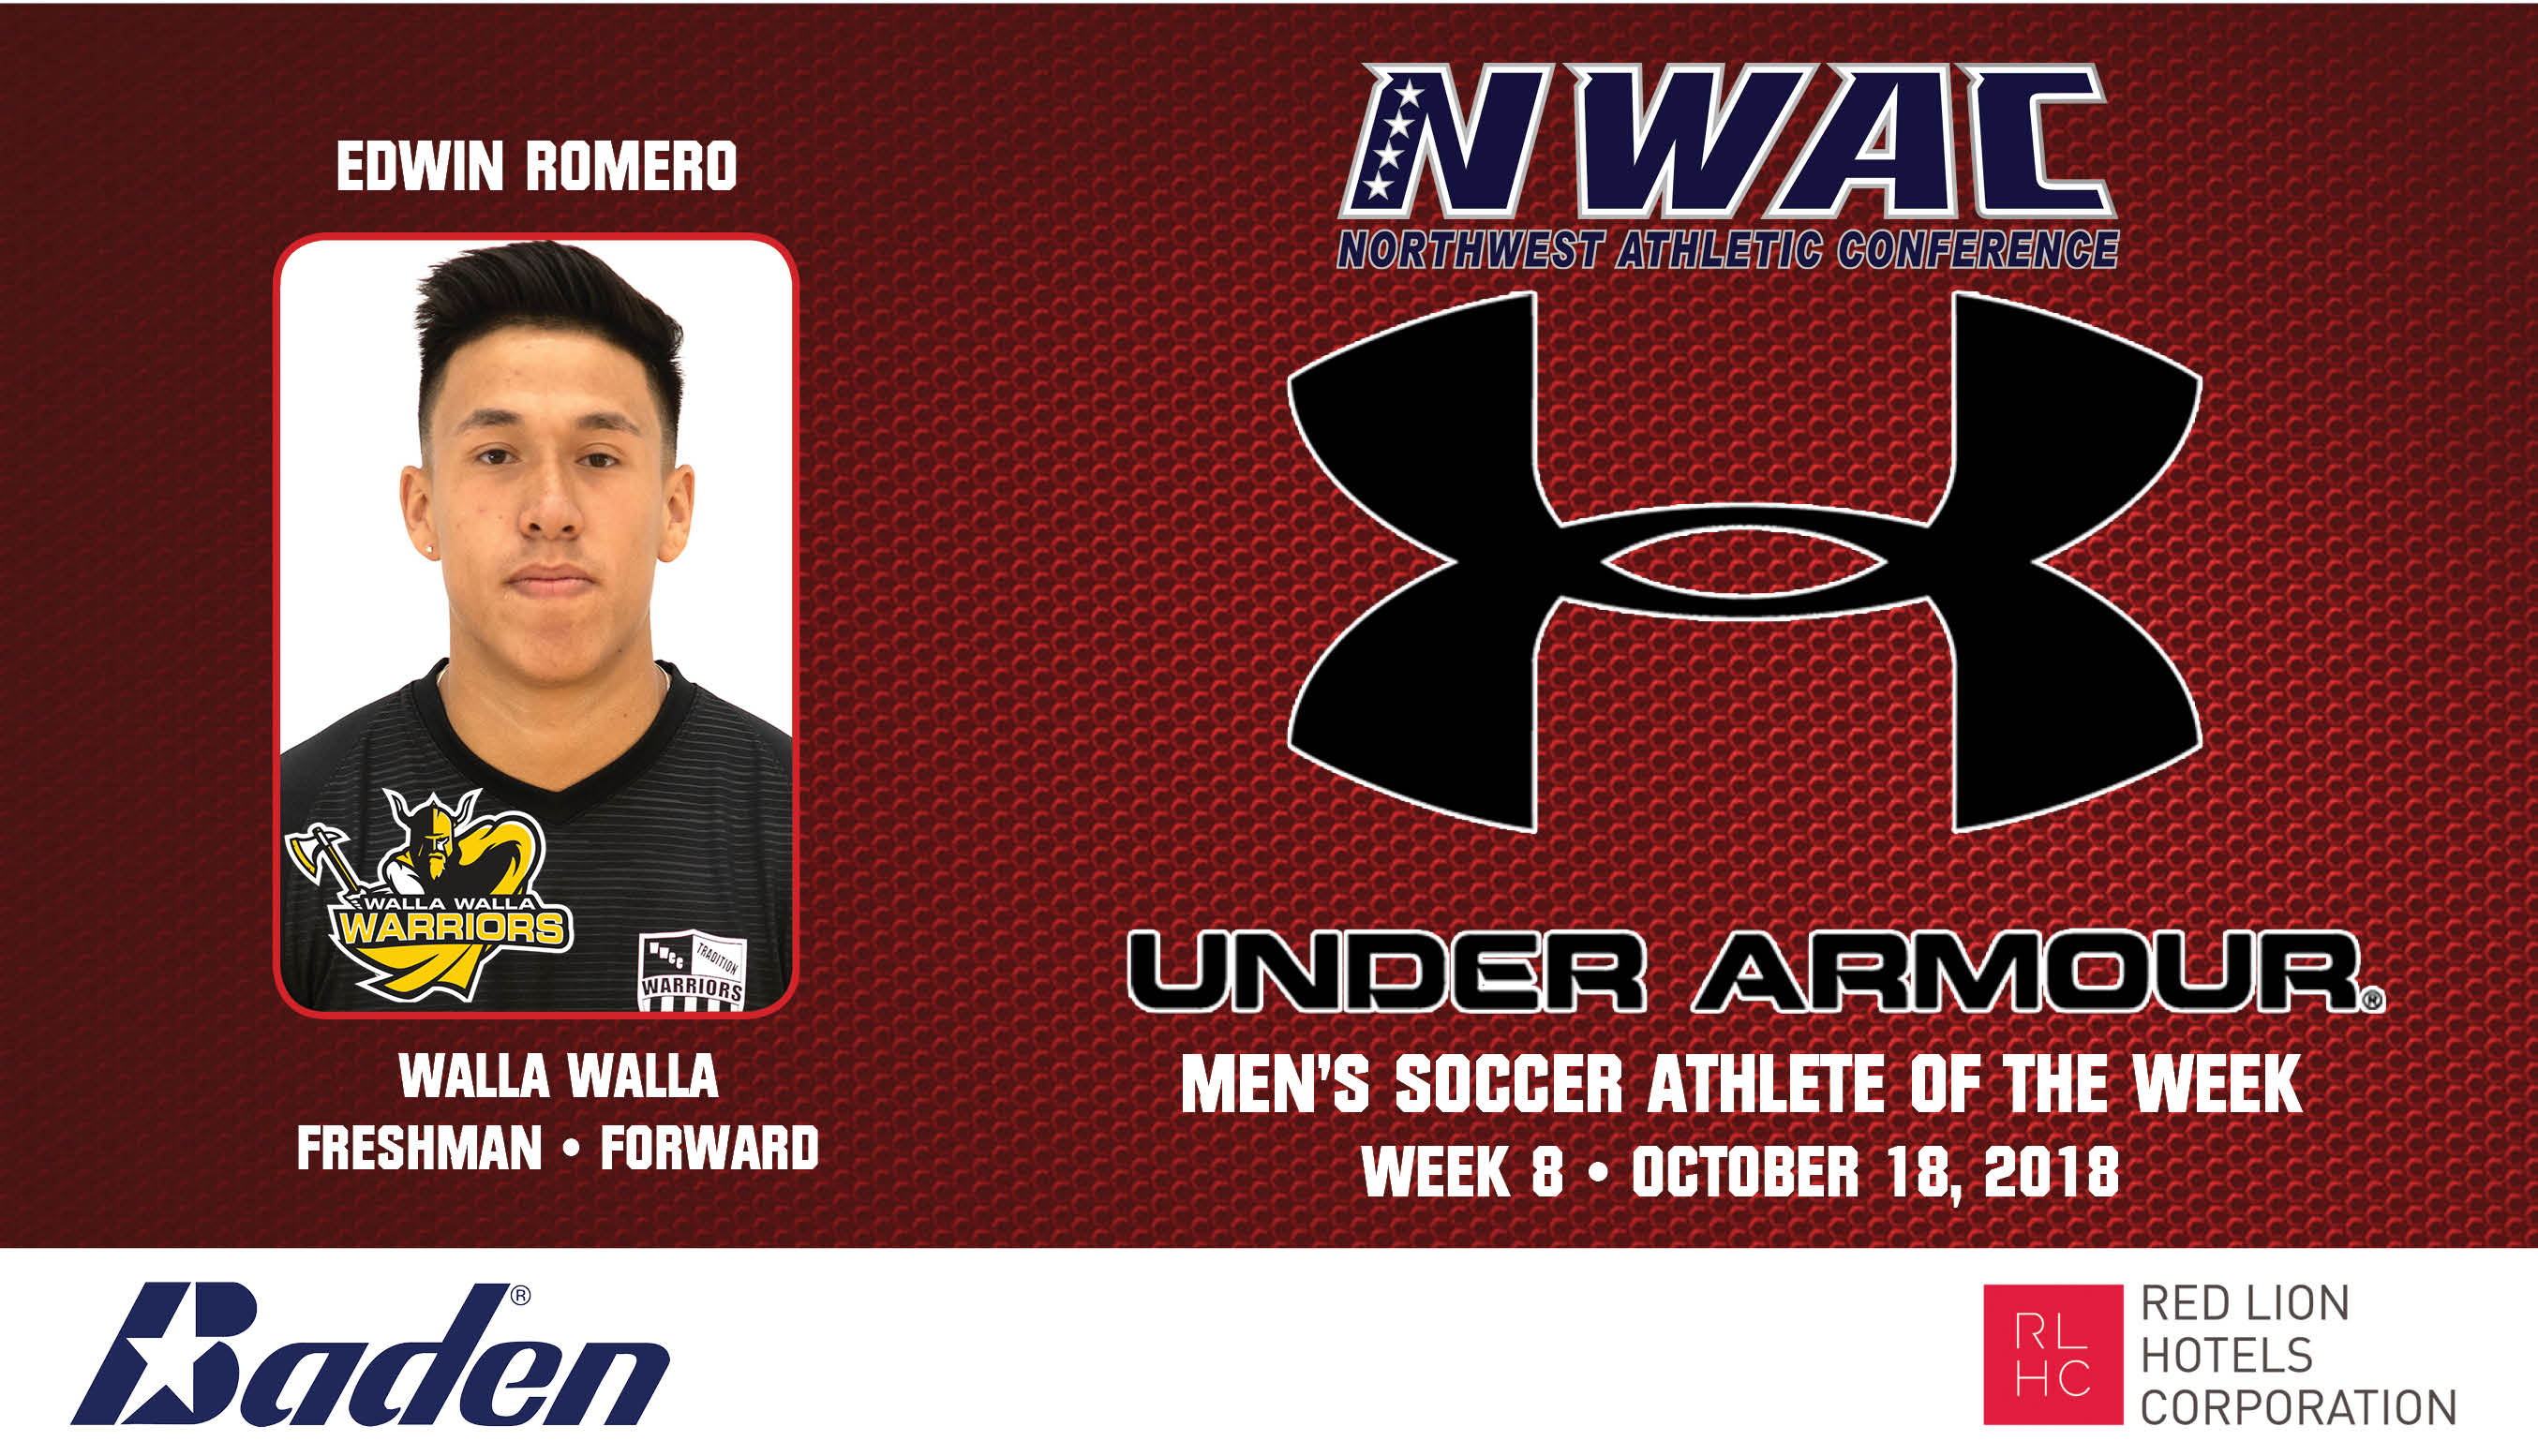 Edwin Romero Armour Player of the Week graphic